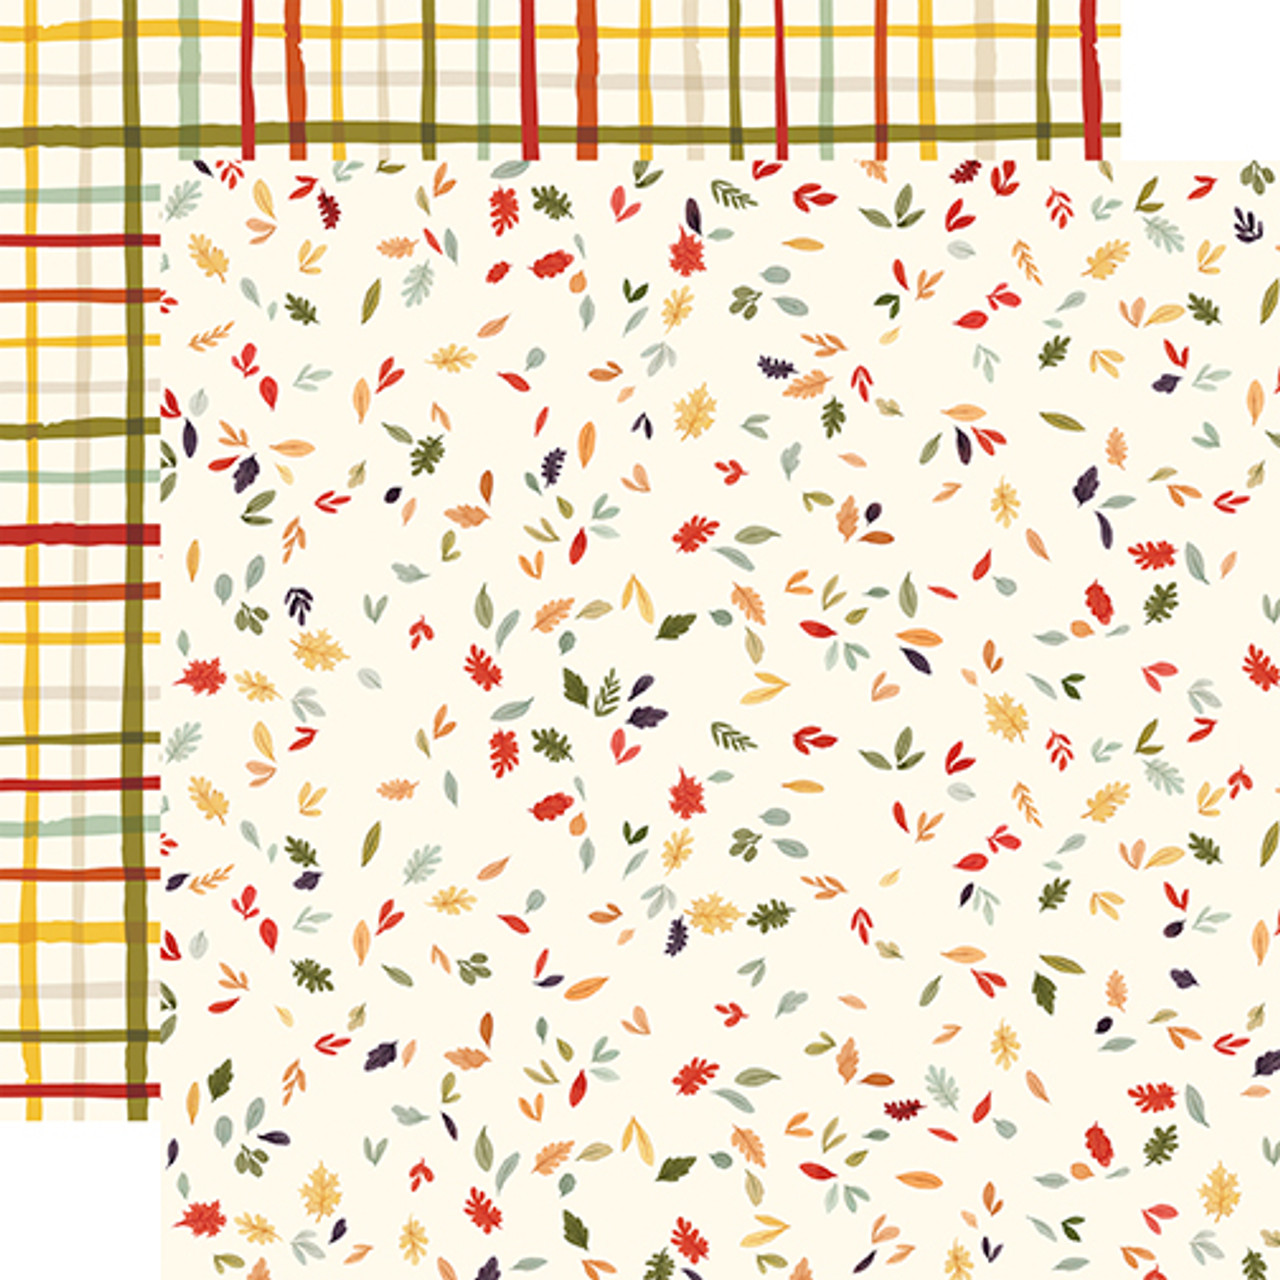 Hello Autumn Collection Scattered Leaves 12 x 12 Double-Sided Scrapbook Paper by Carta Bella